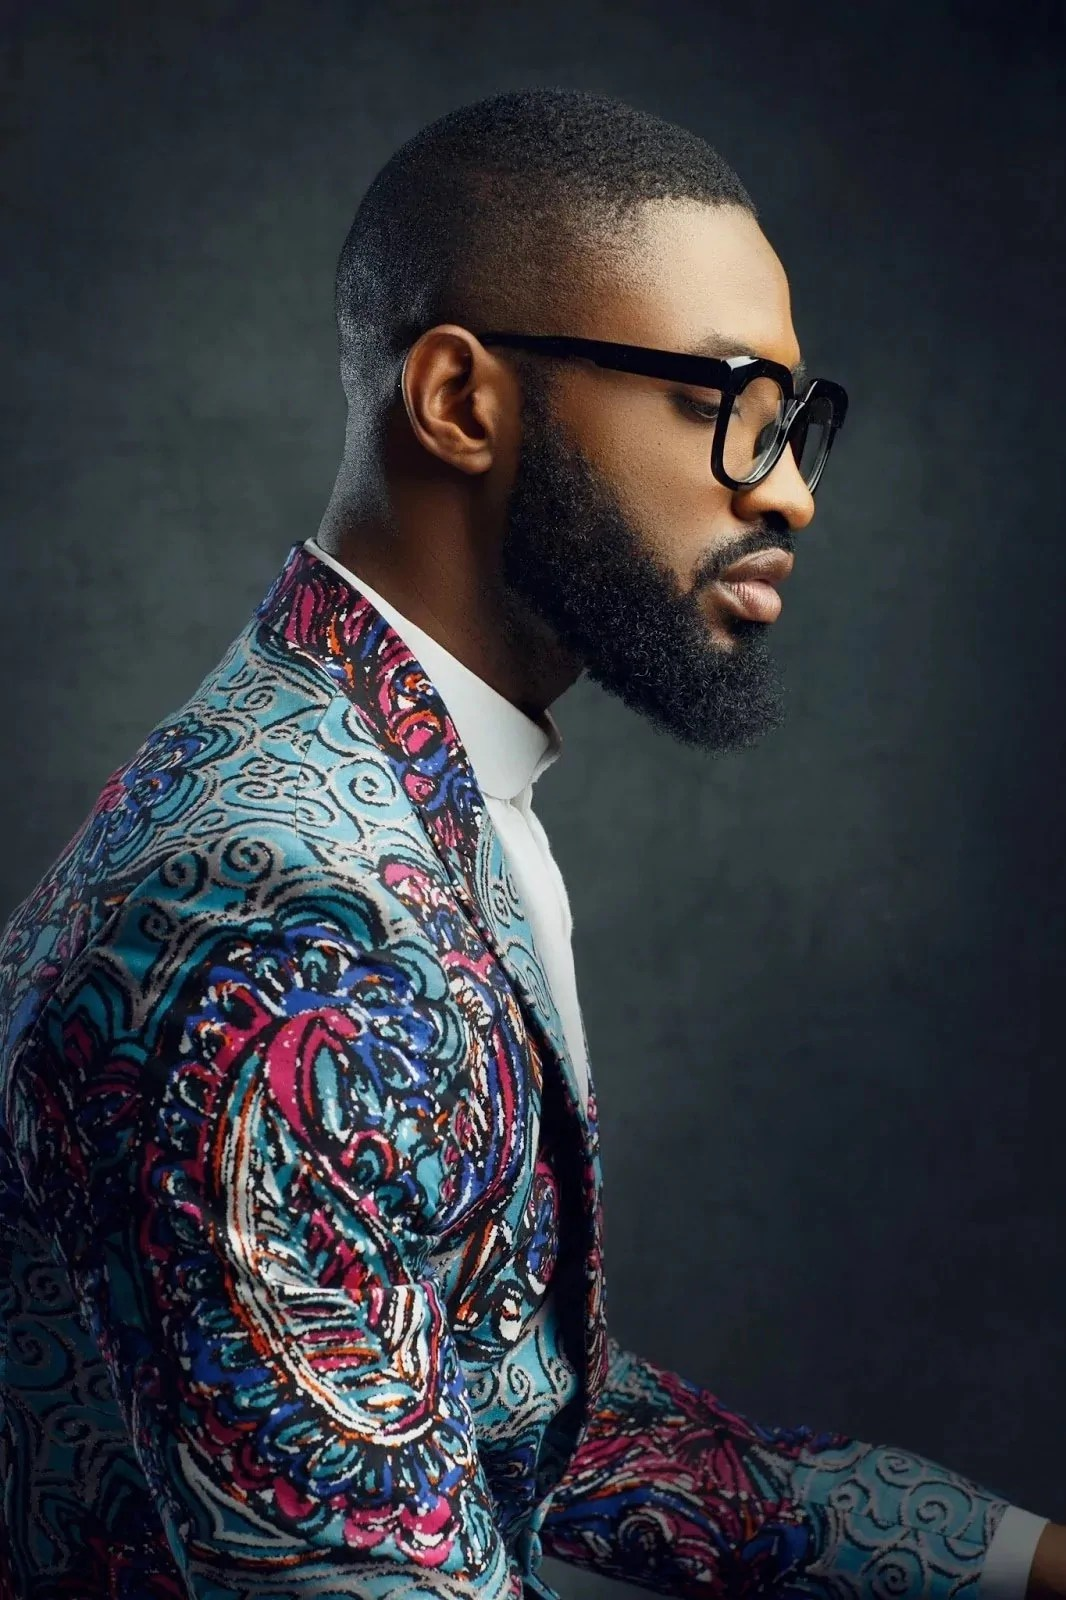 National Broadcasting Commission NBC has banned a song of singer, Ric Hassani